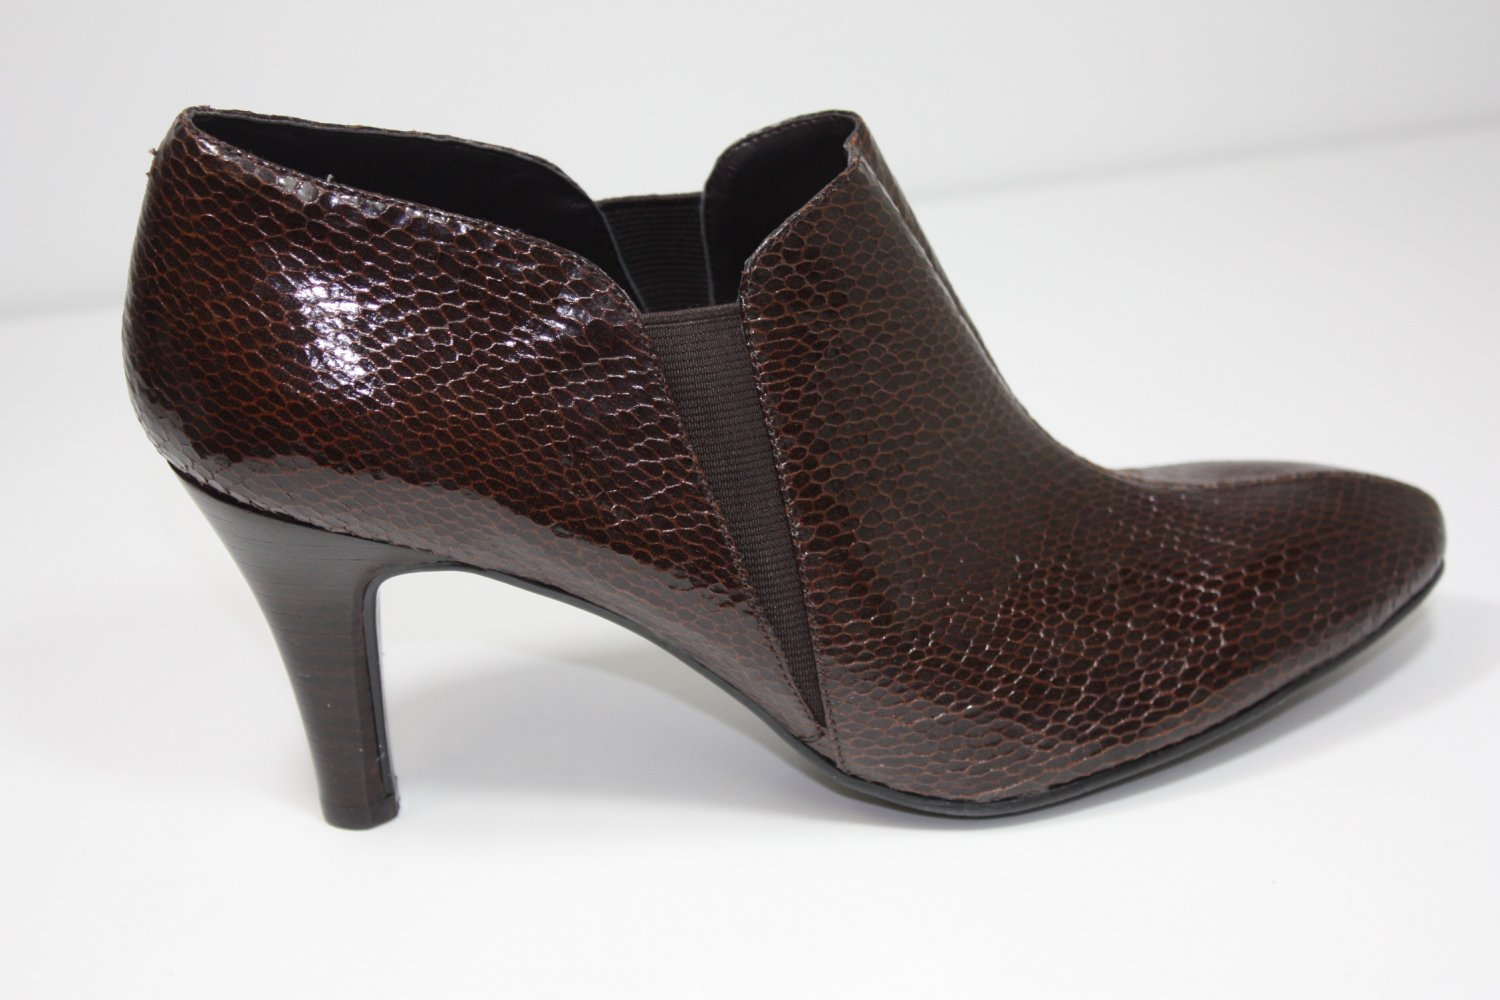 Bandolino Daija Ankle Boots Brown Shoes US 9.5 $89